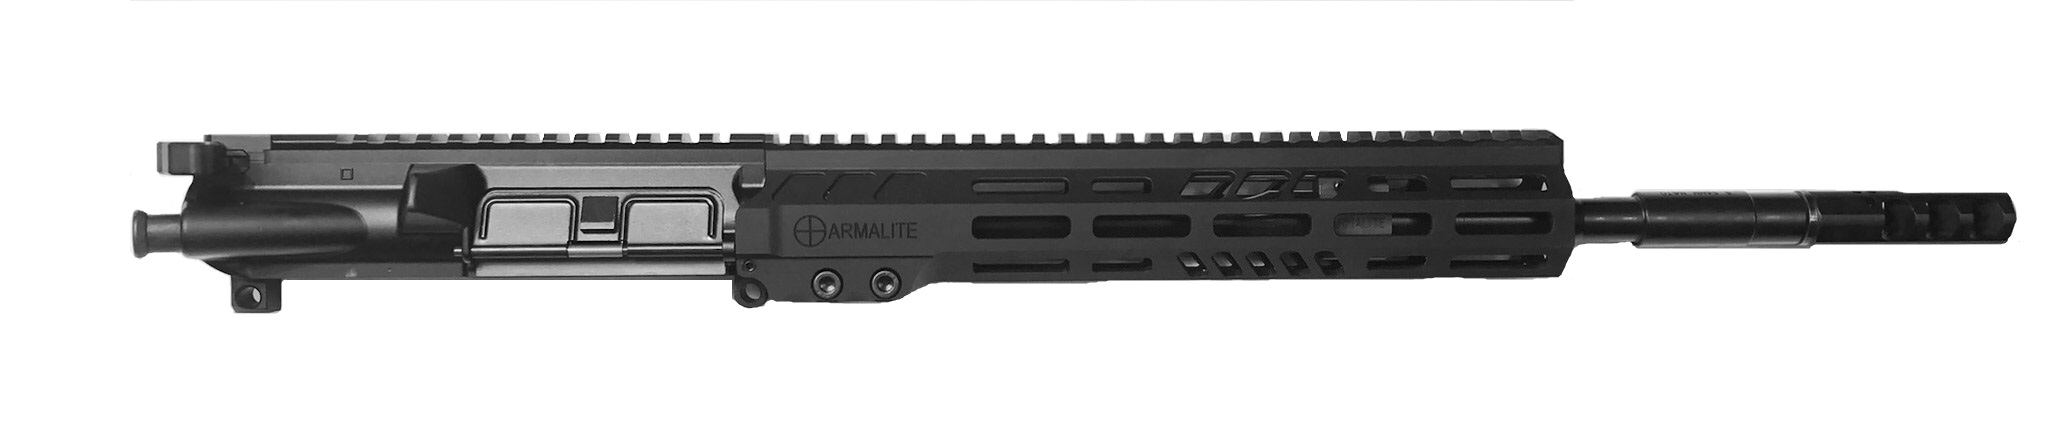 "M-15™ 14.5"" TACTICAL COMPLETE UPPER"